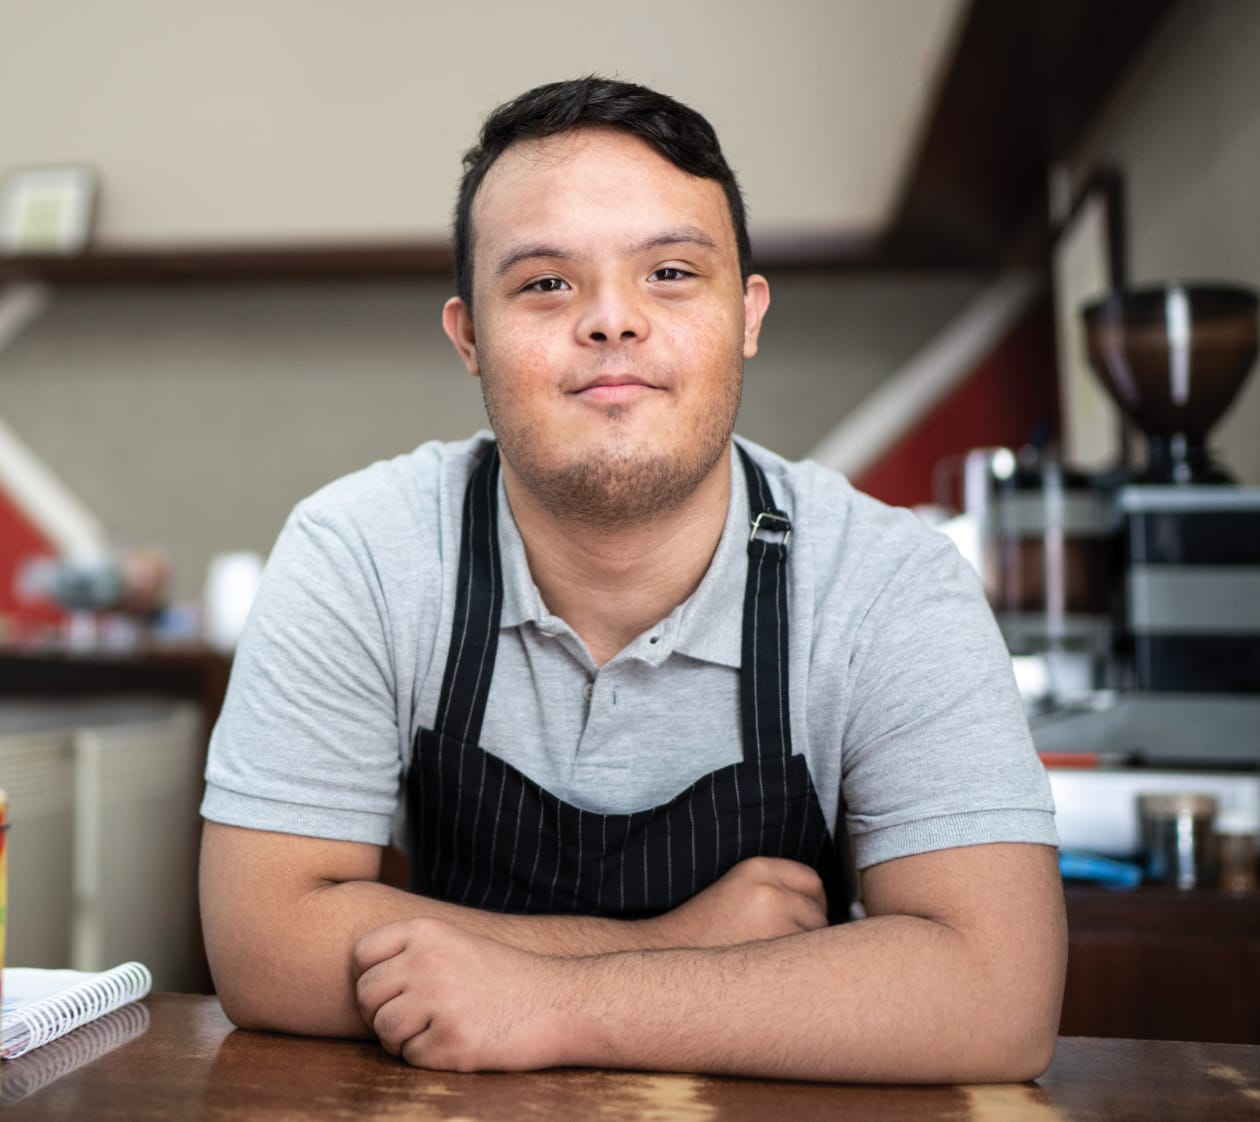 portrait of a softly smiling man wearing an apron at a coffee shop